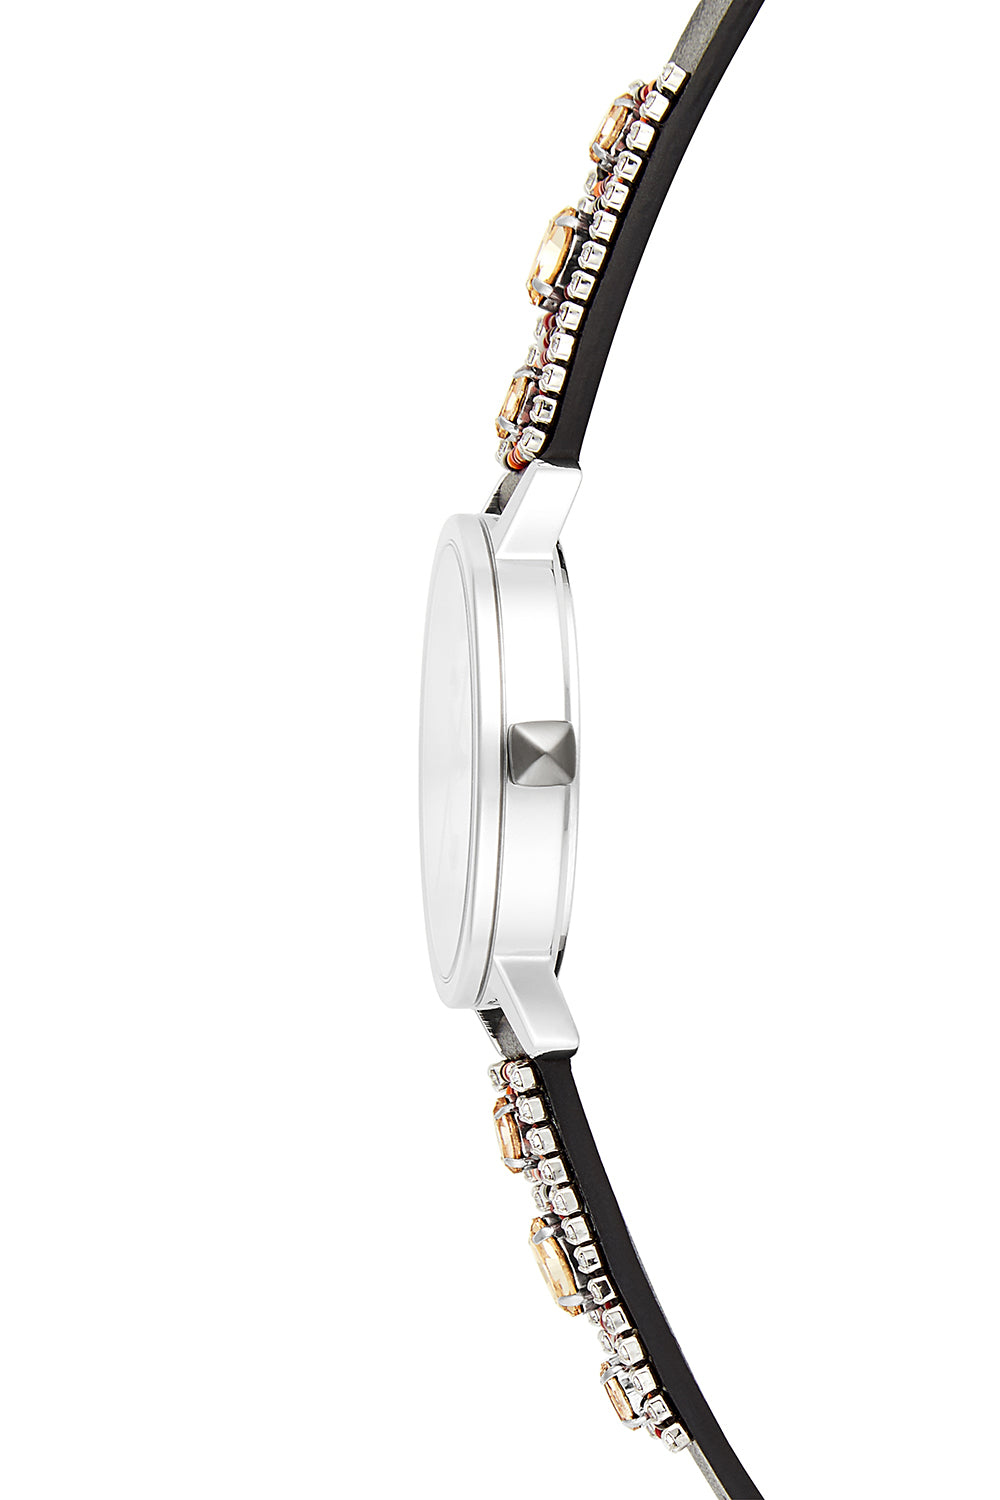 BFFL Silver Tone Beaded Strap Watch, 36MM